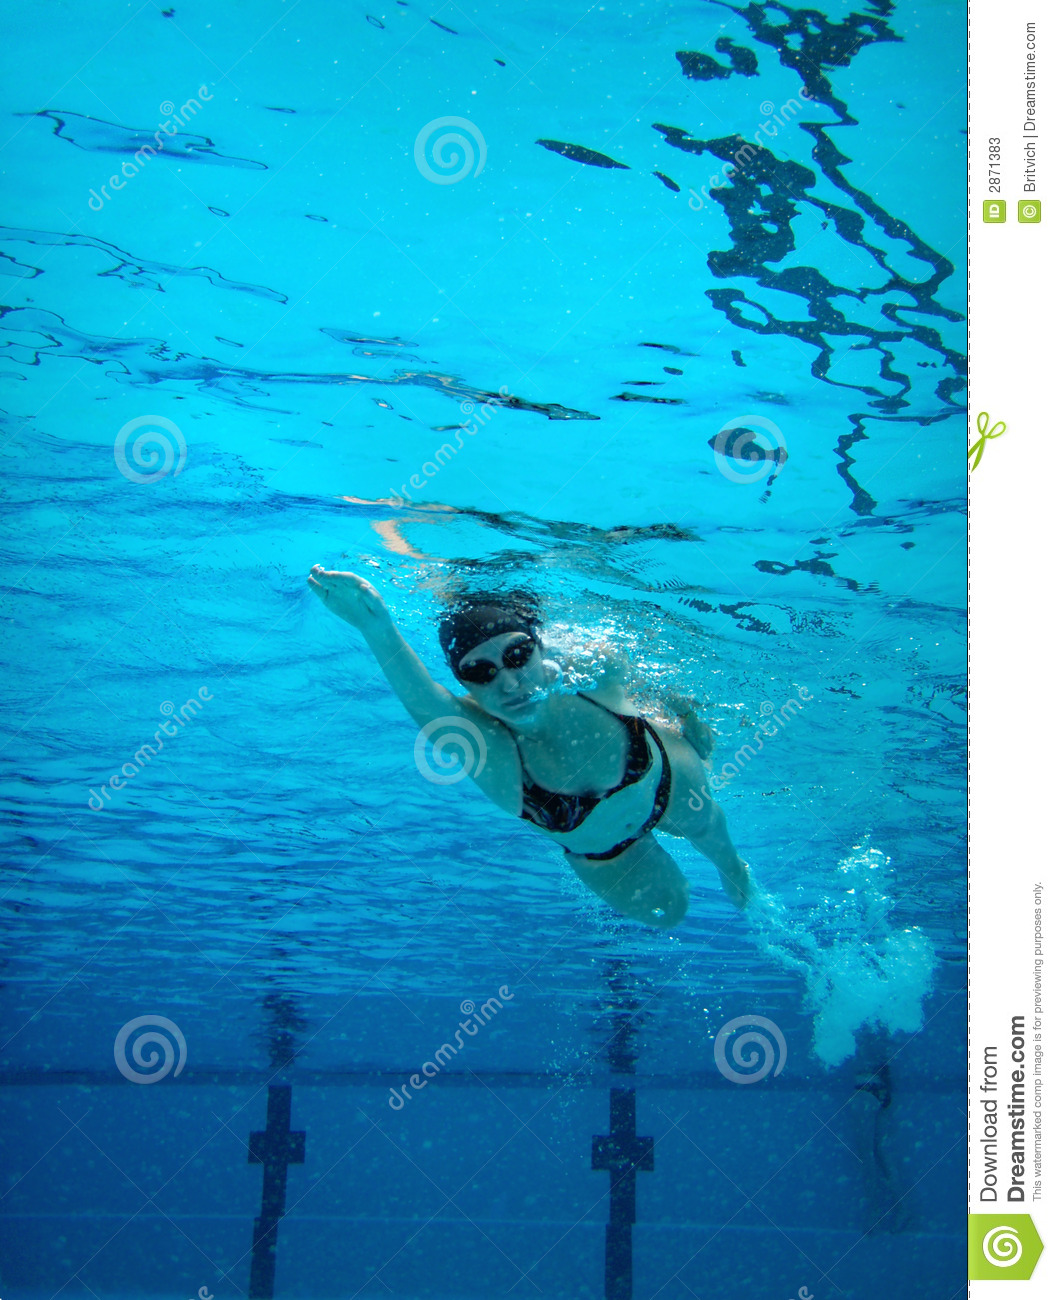 Stock photos underwater swimming woman